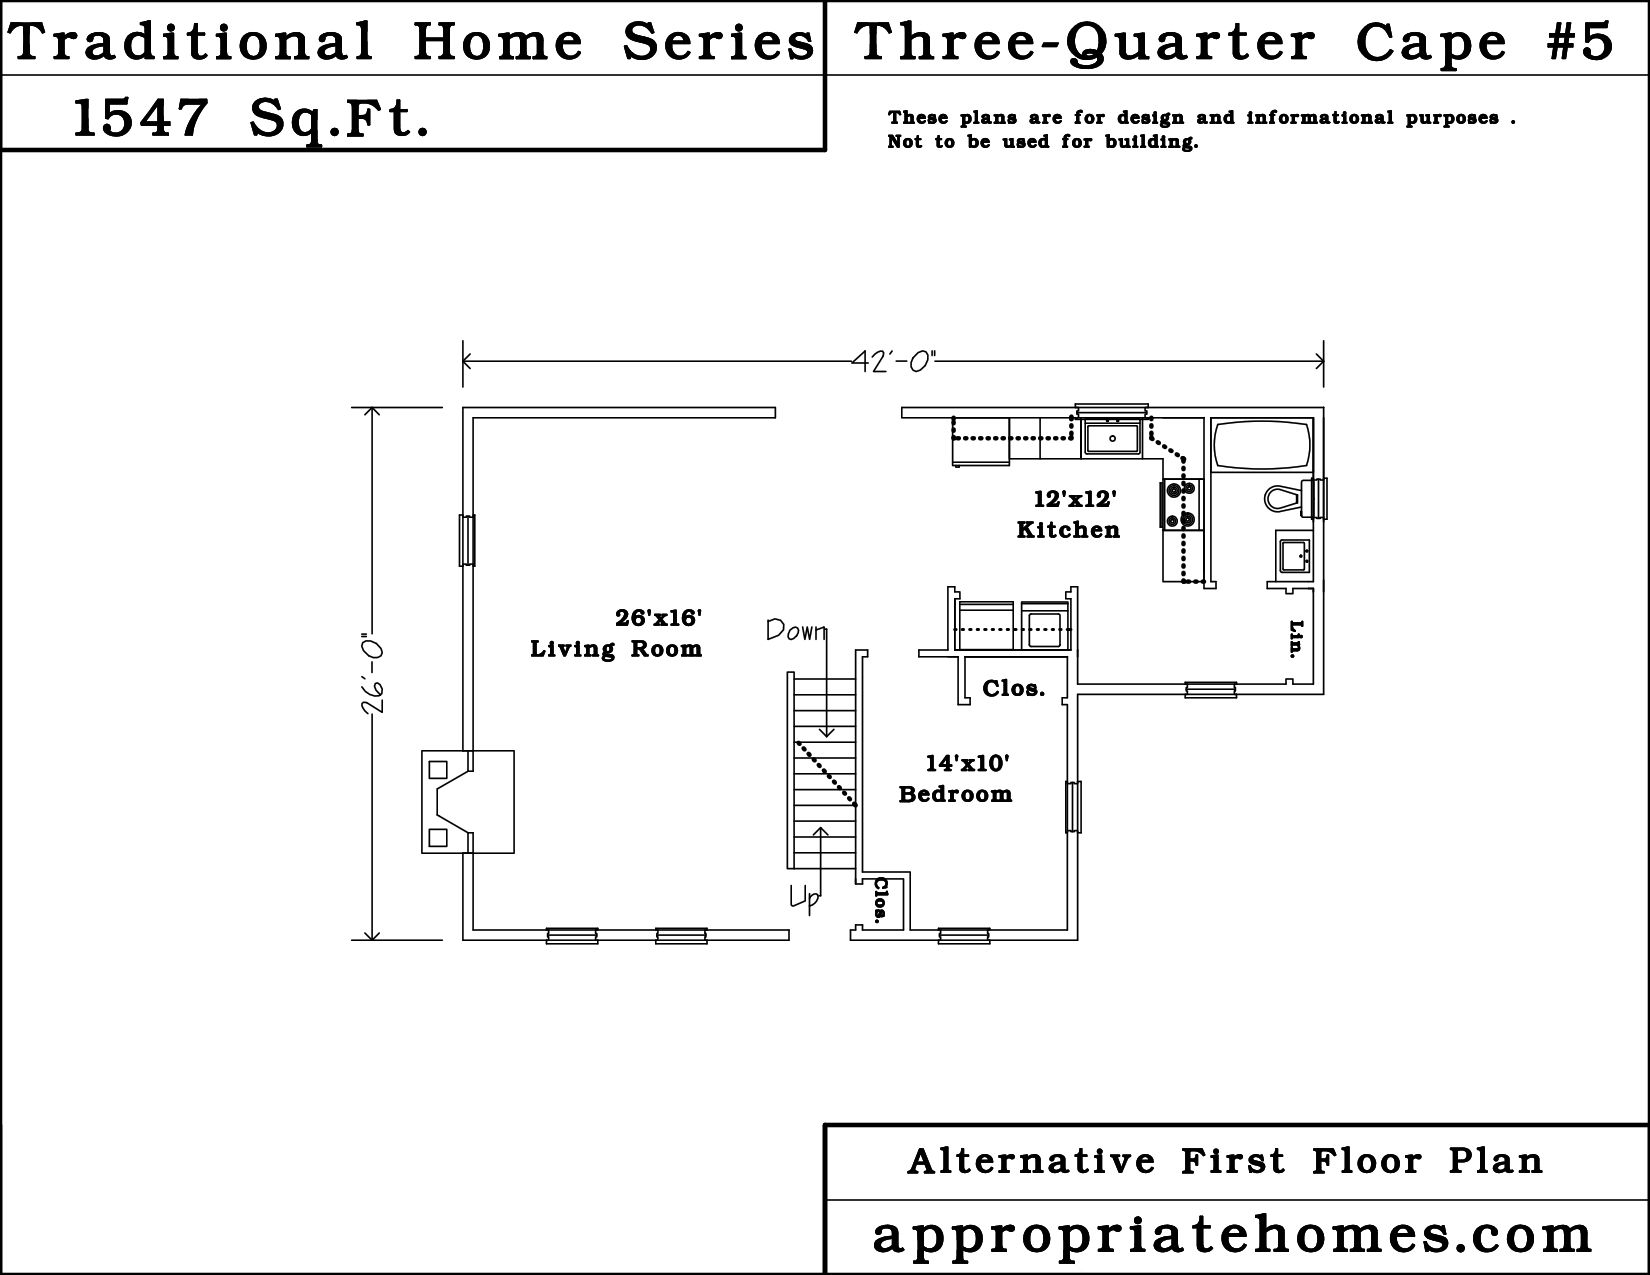 Cape cod home design three quarter cape style house for Cape cod renovation floor plans